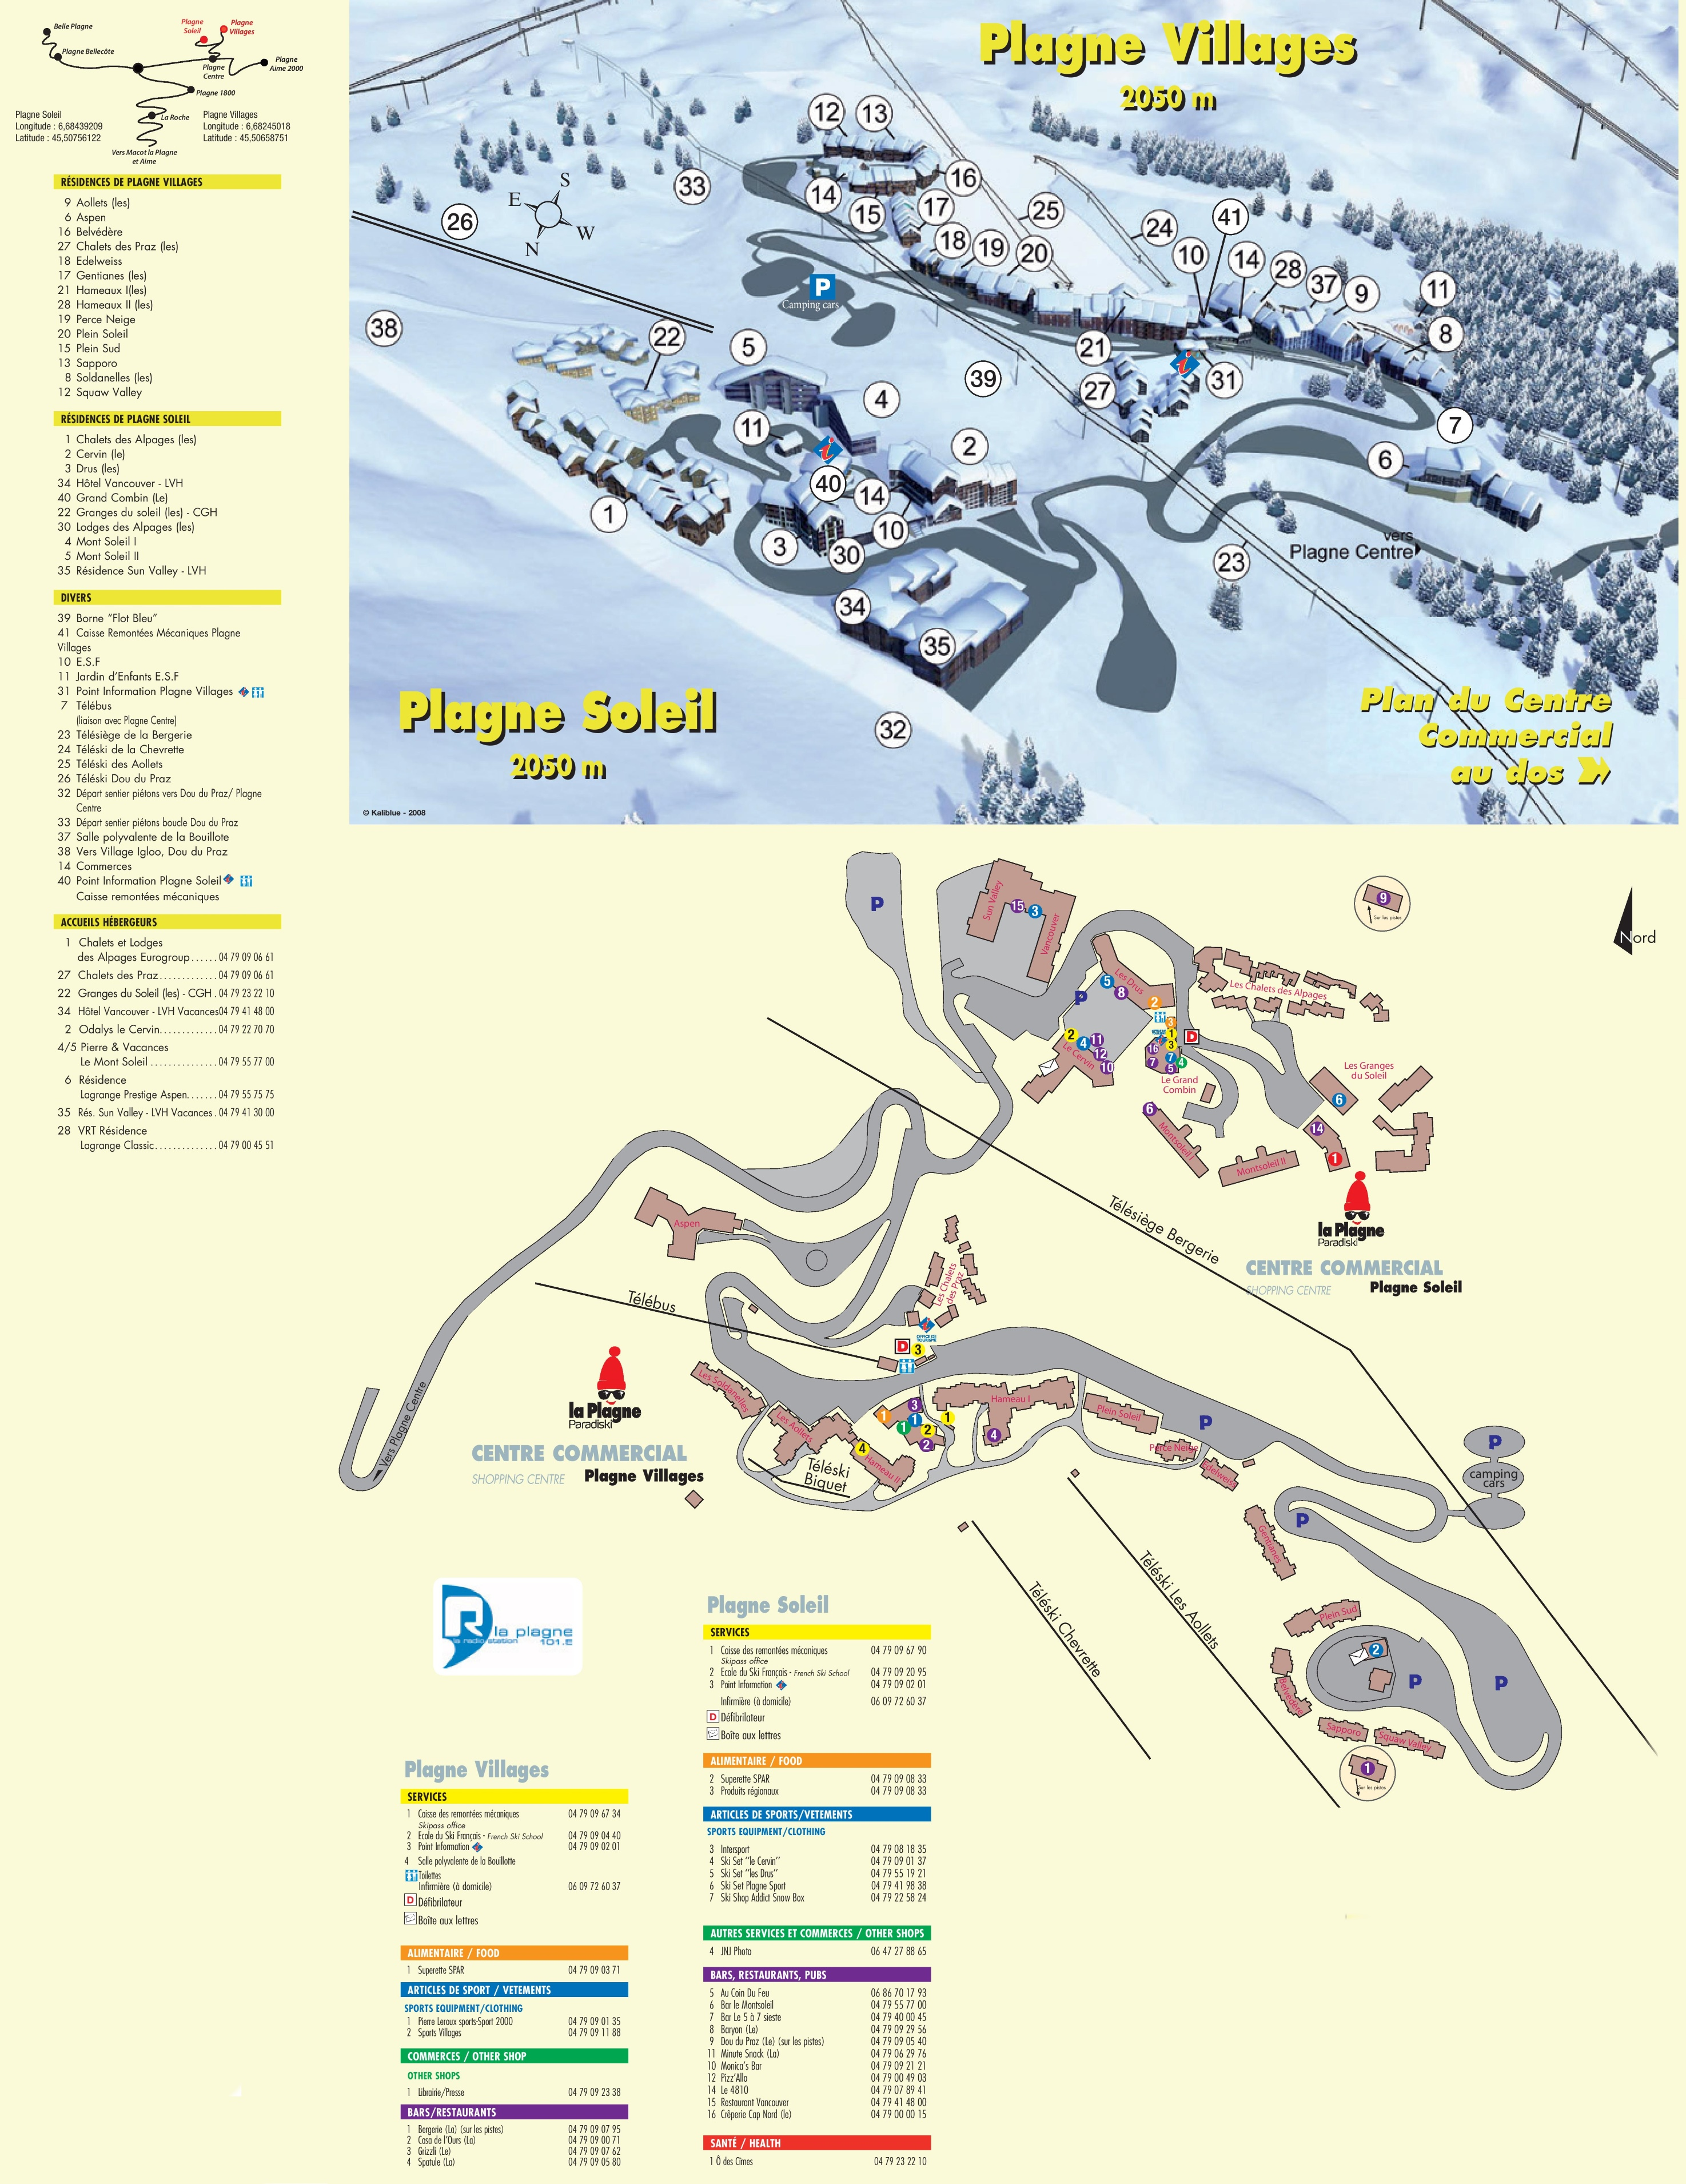 Plagne Soleil Villages map